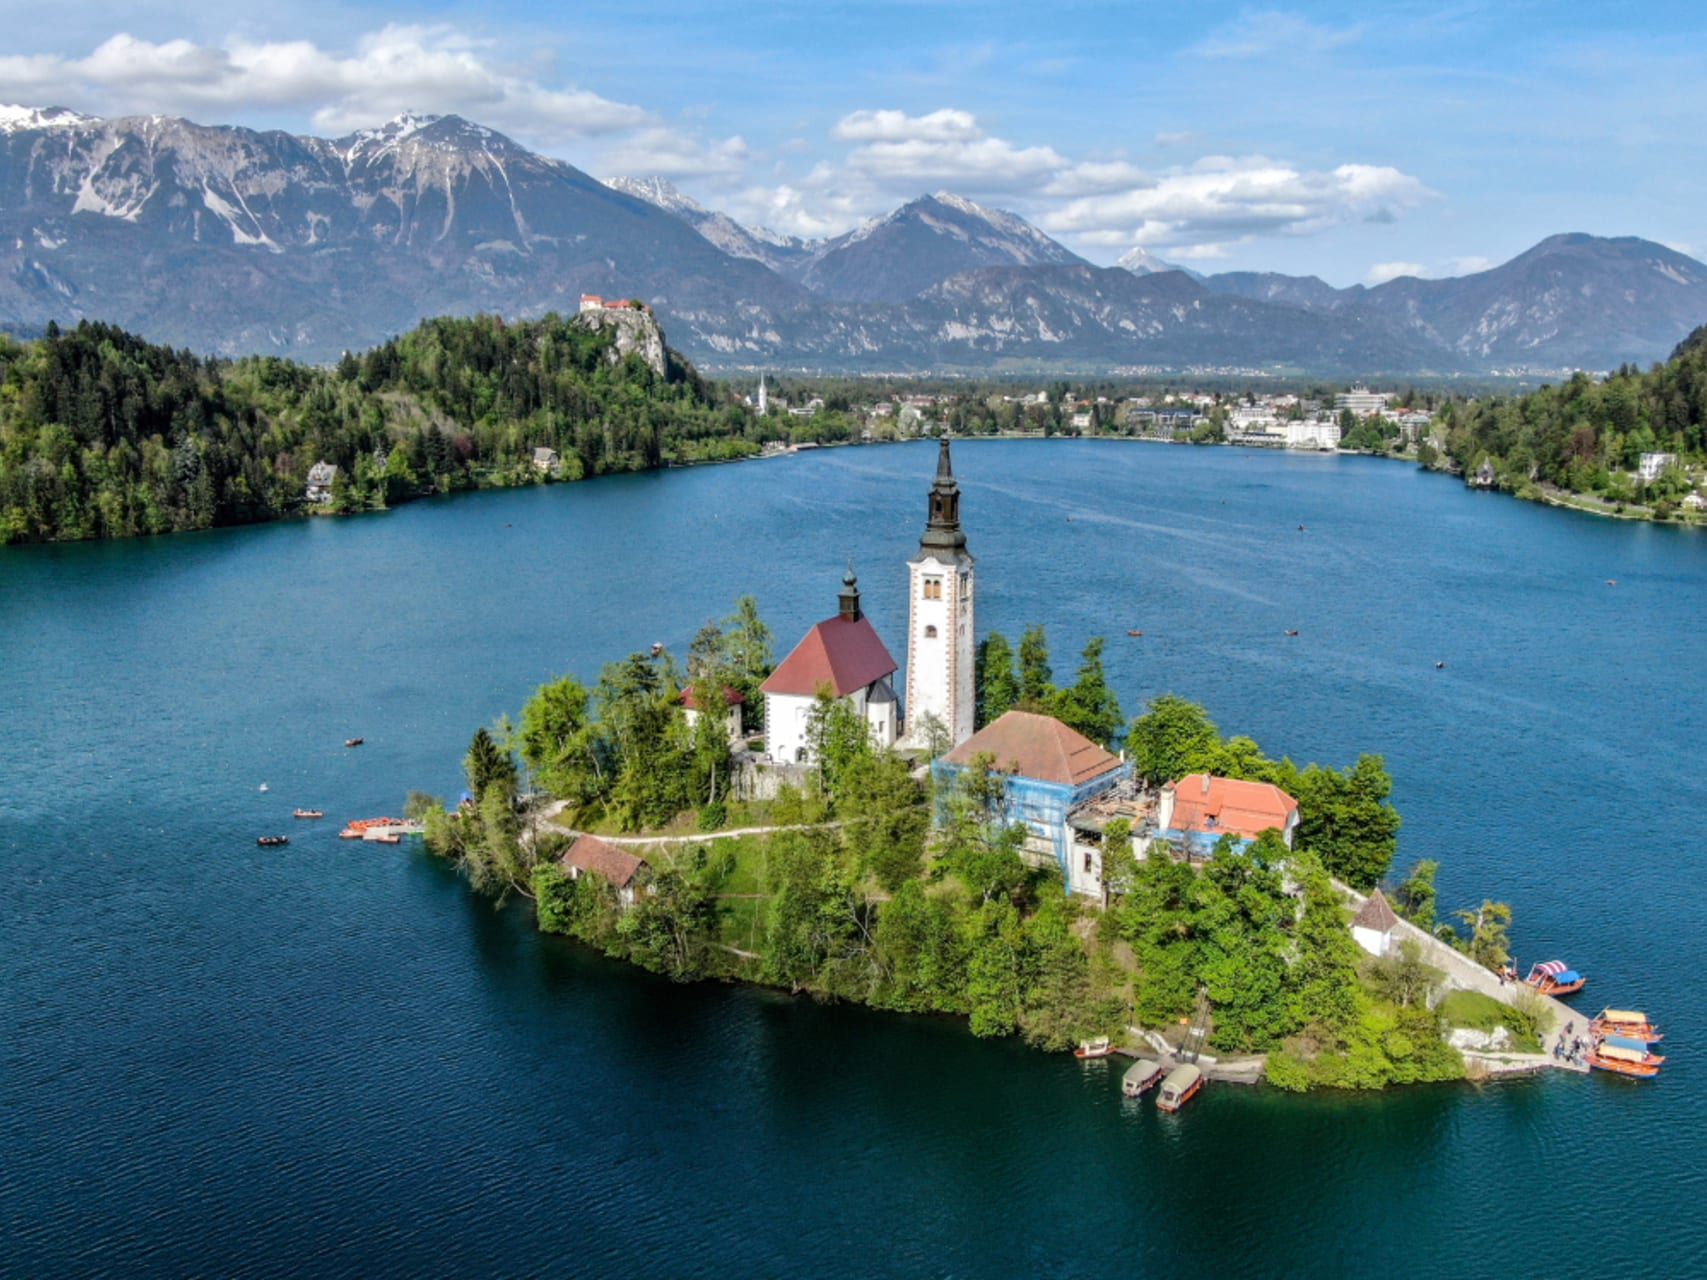 Bled - Trains, Diplomats and Olympic Medals